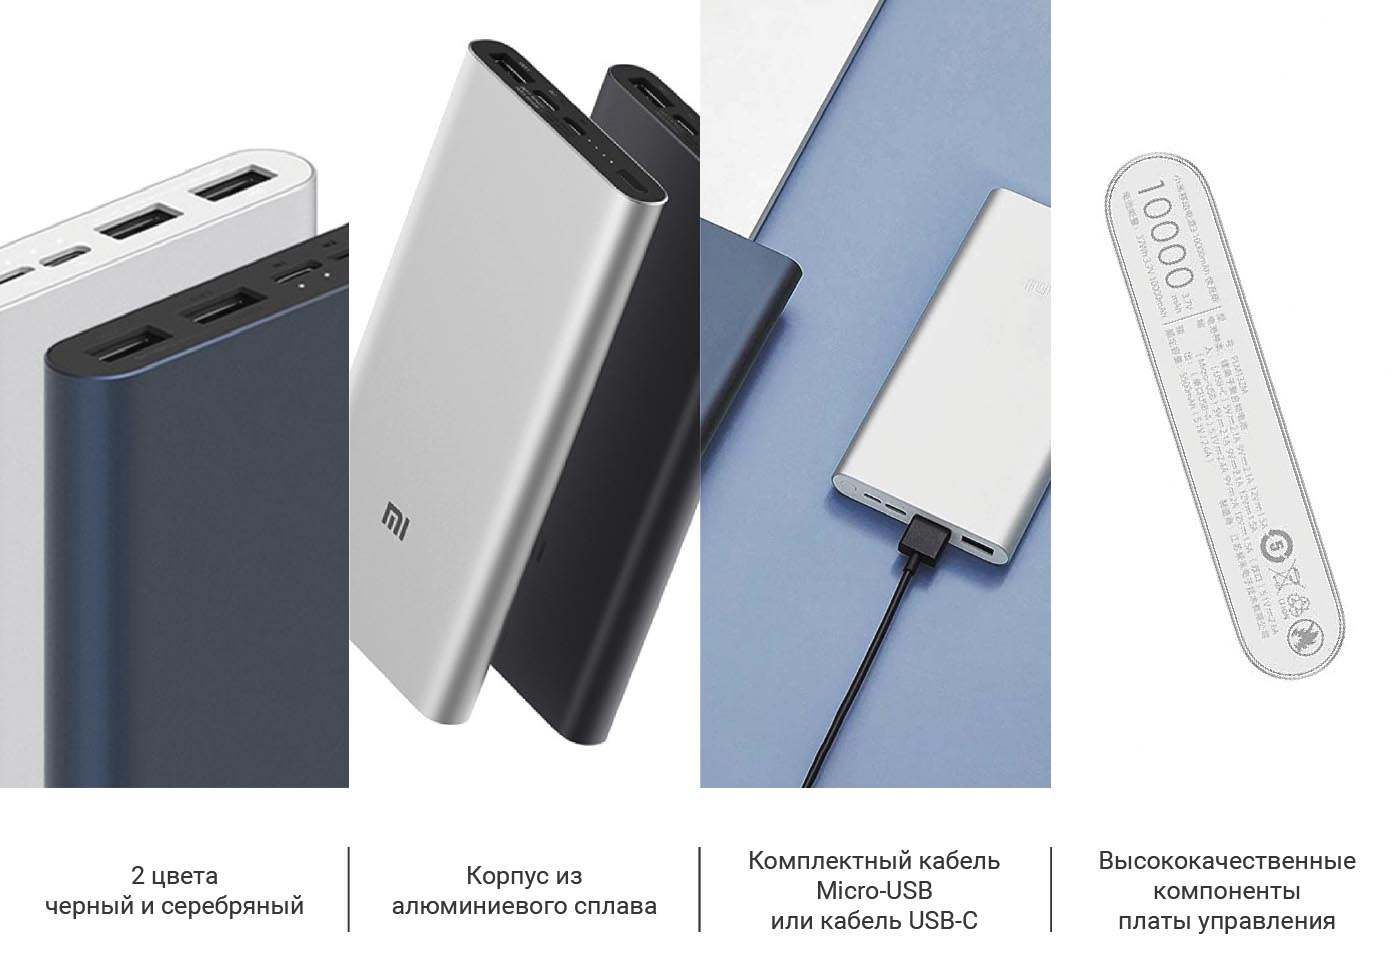 Power Bank Xiaomi (Mi) Power 3 Pro 20000 mAh